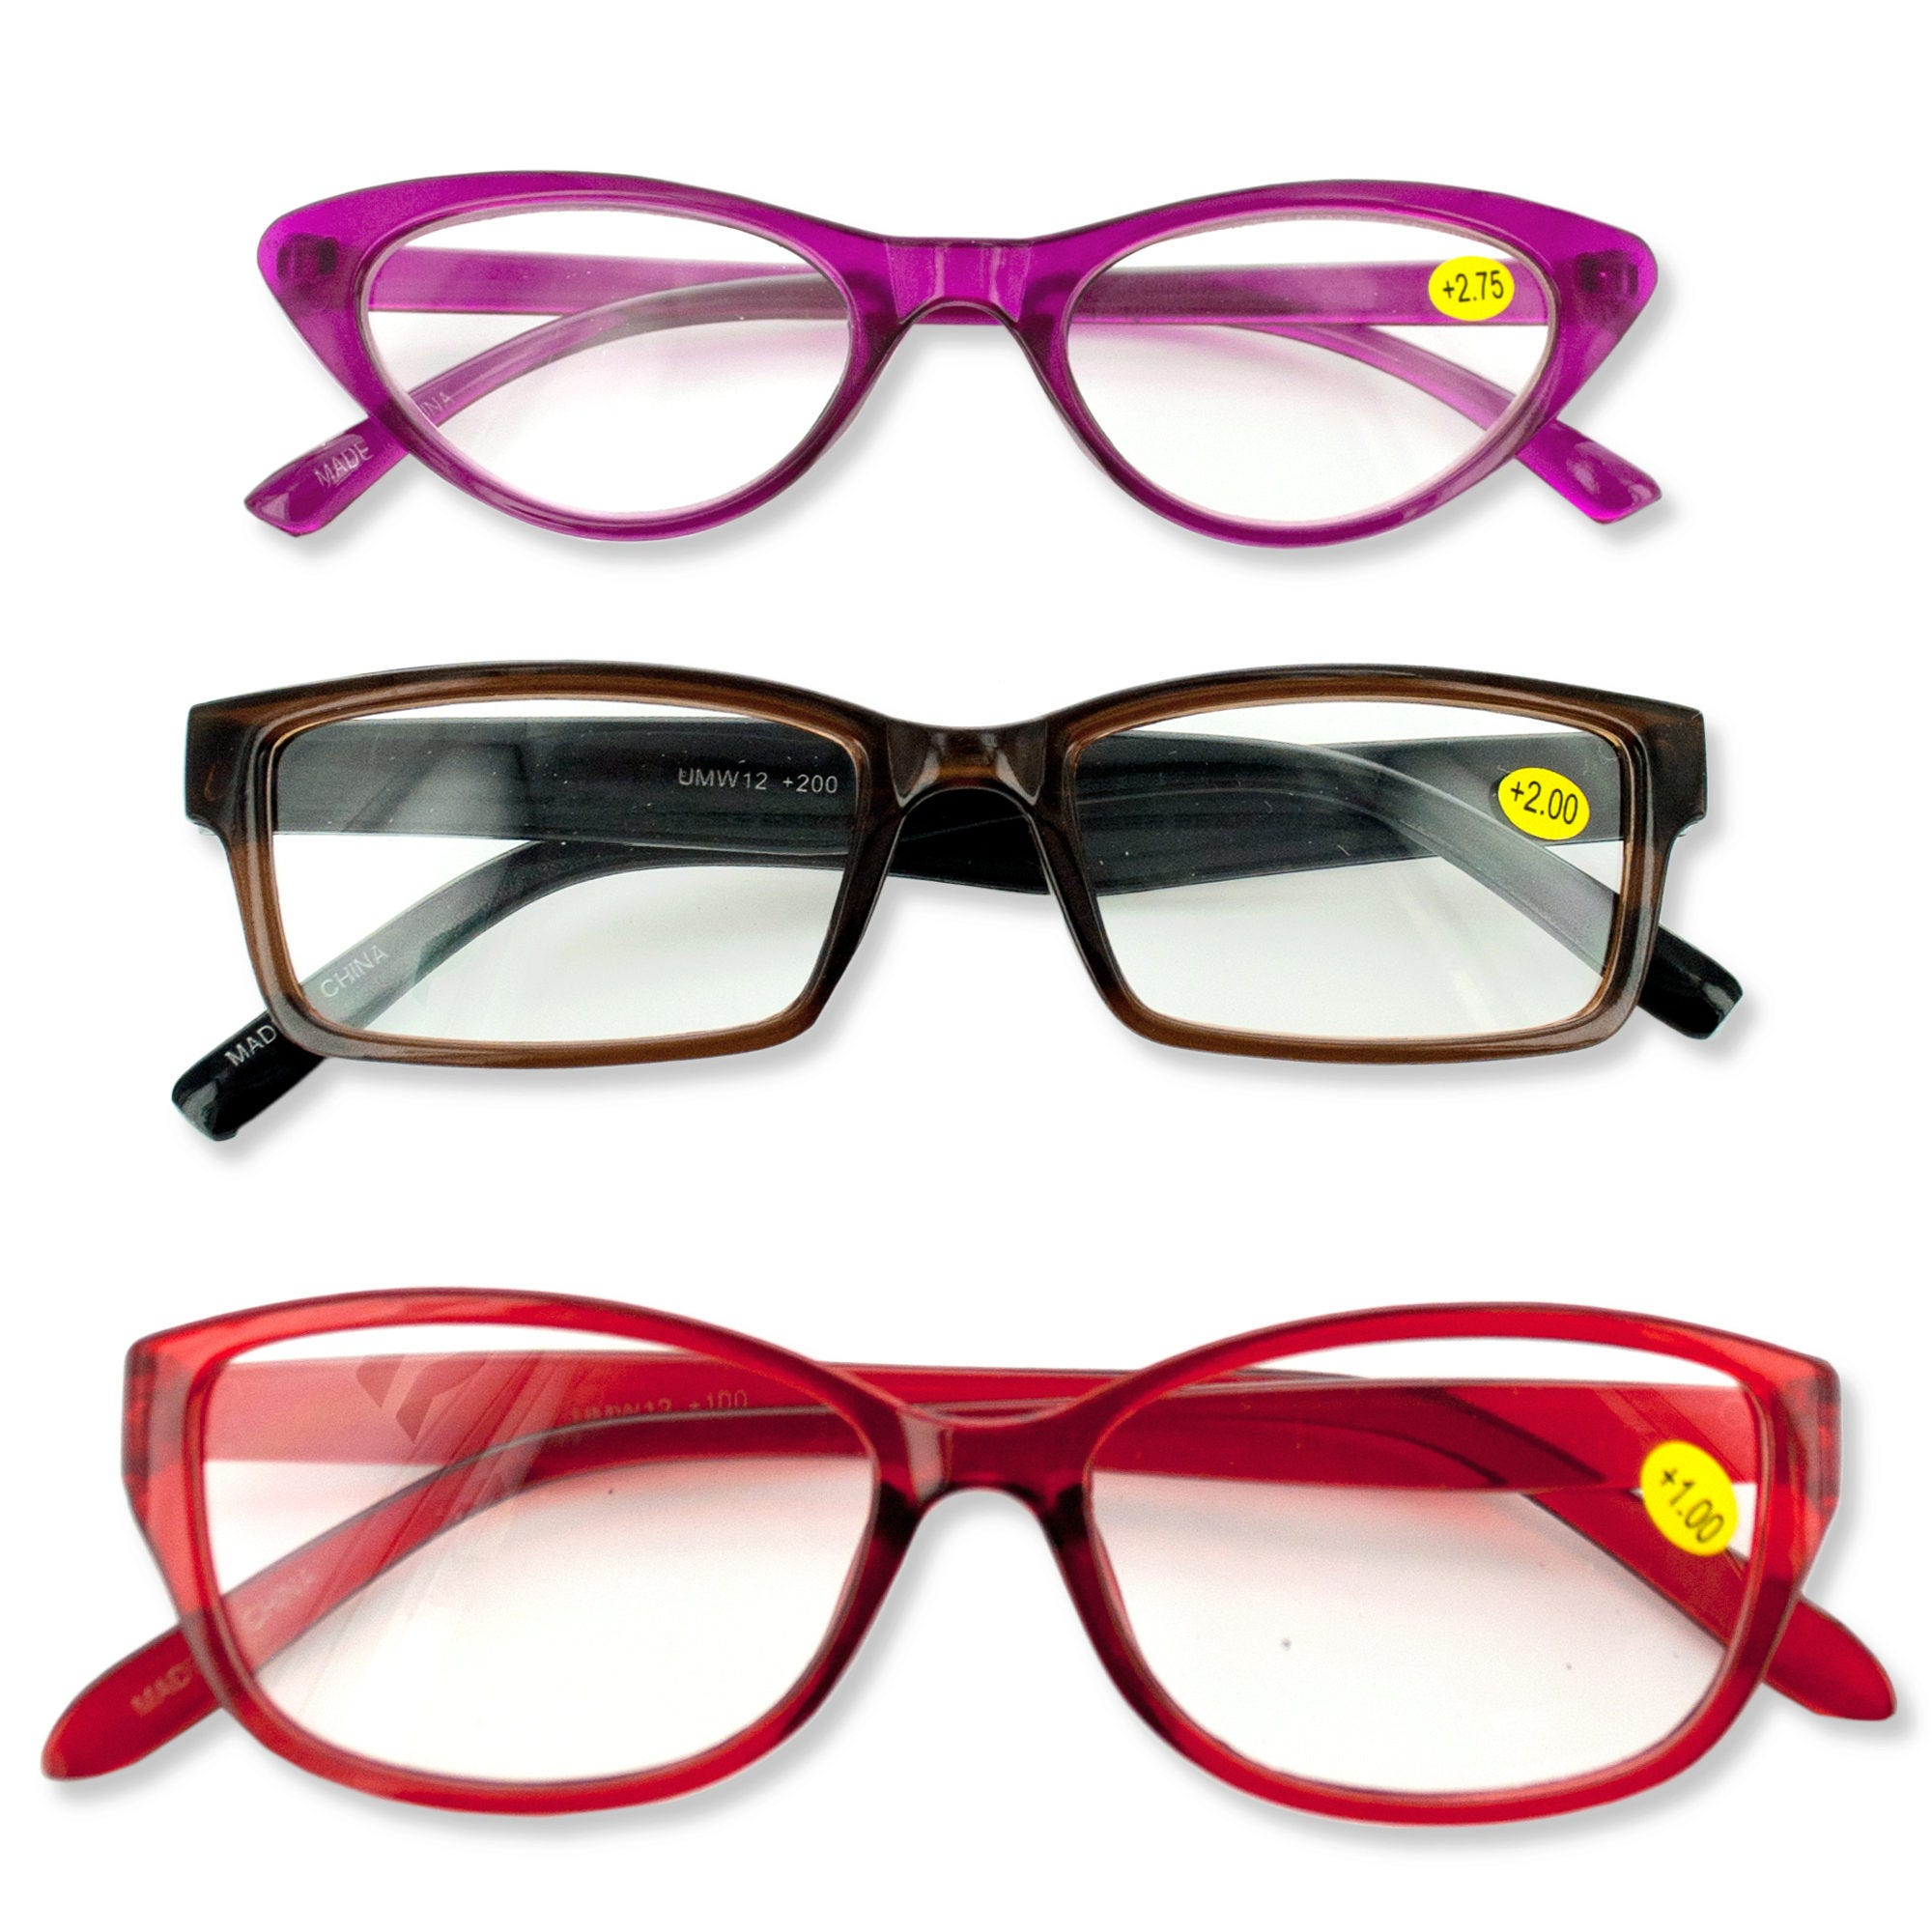 ad12b77d6a8 Wholesale Reading Glasses now available at Wholesale Central - Items ...